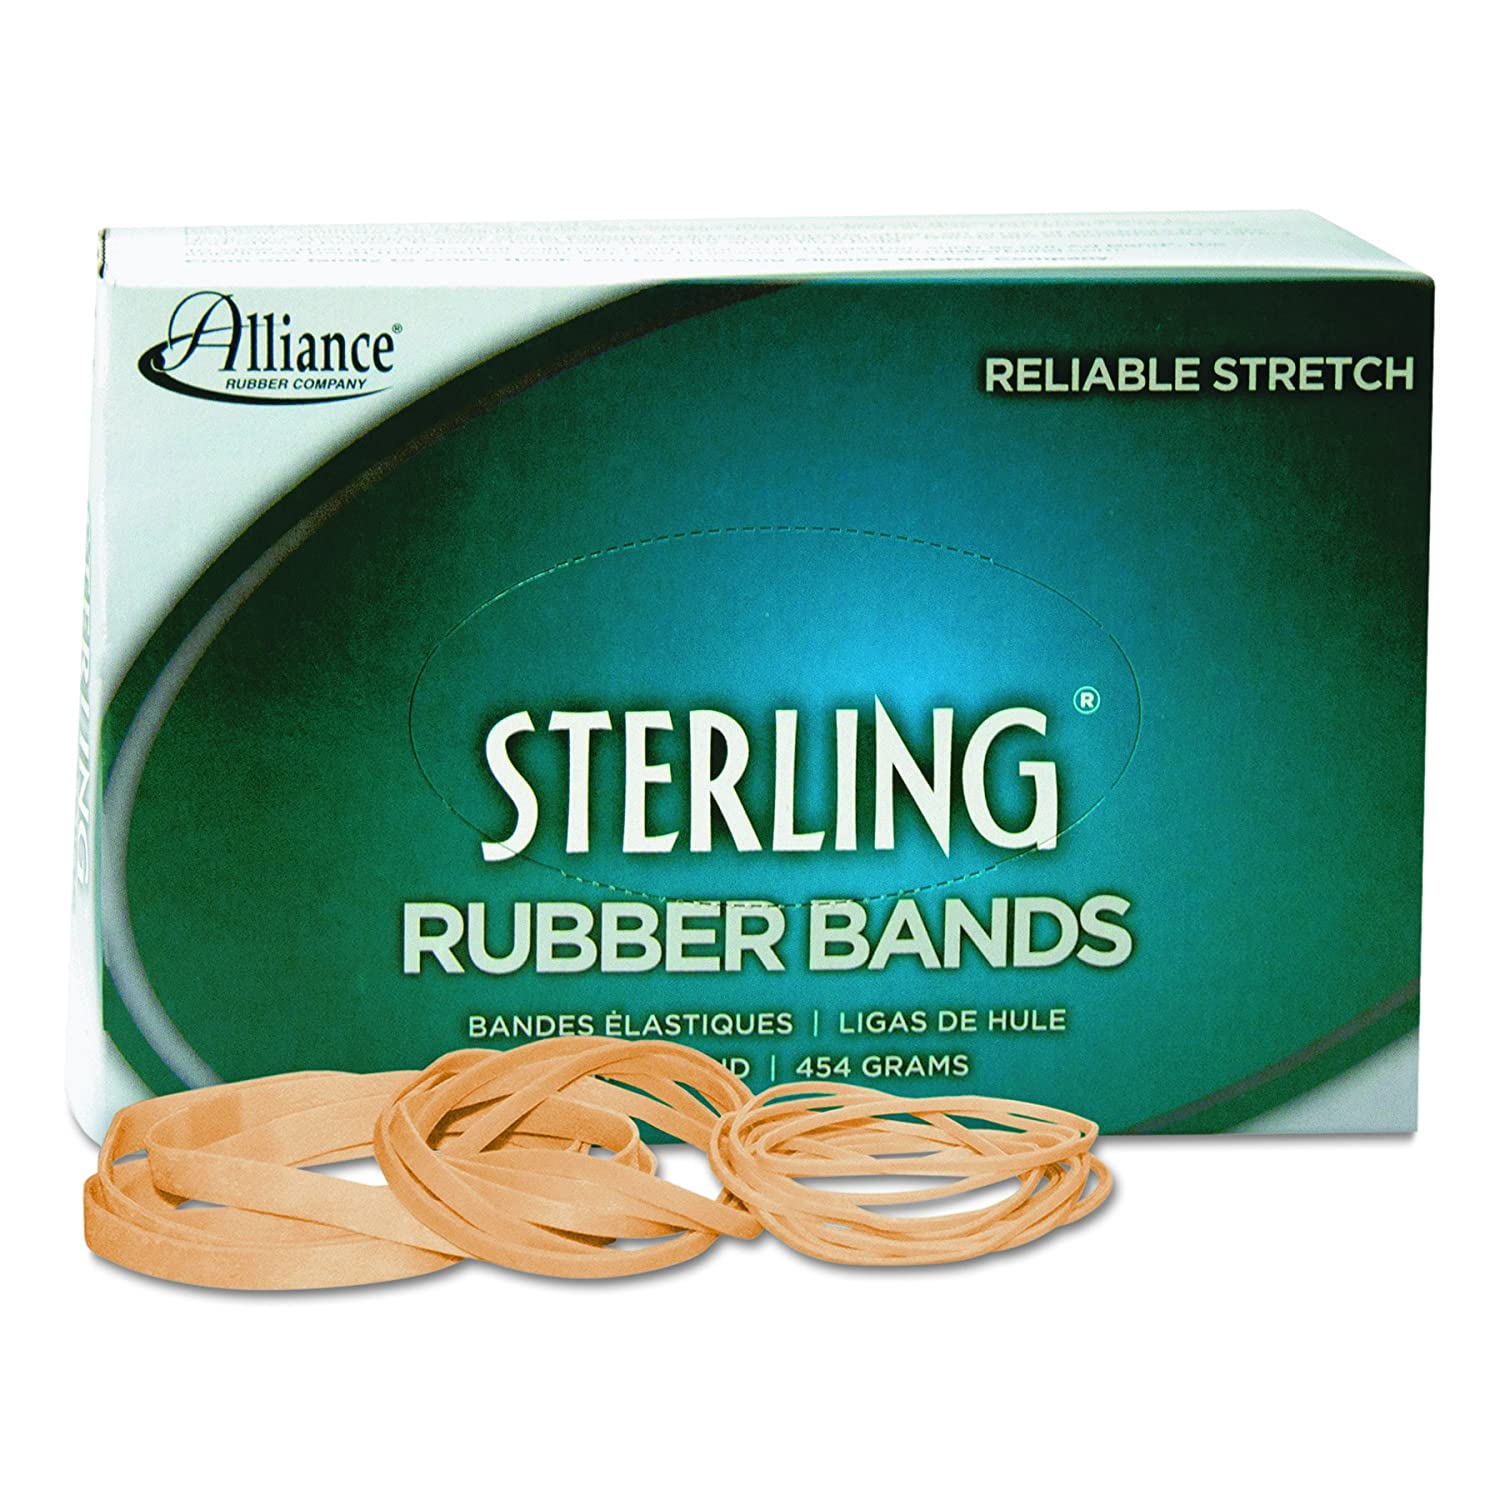 Alliance Rubber 24335 Sterling Rubber Bands Size #33, 1 lb Box Contains Approx. 850 Bands (3 1/2 x 1/8, Natural Crepe) #N/A!